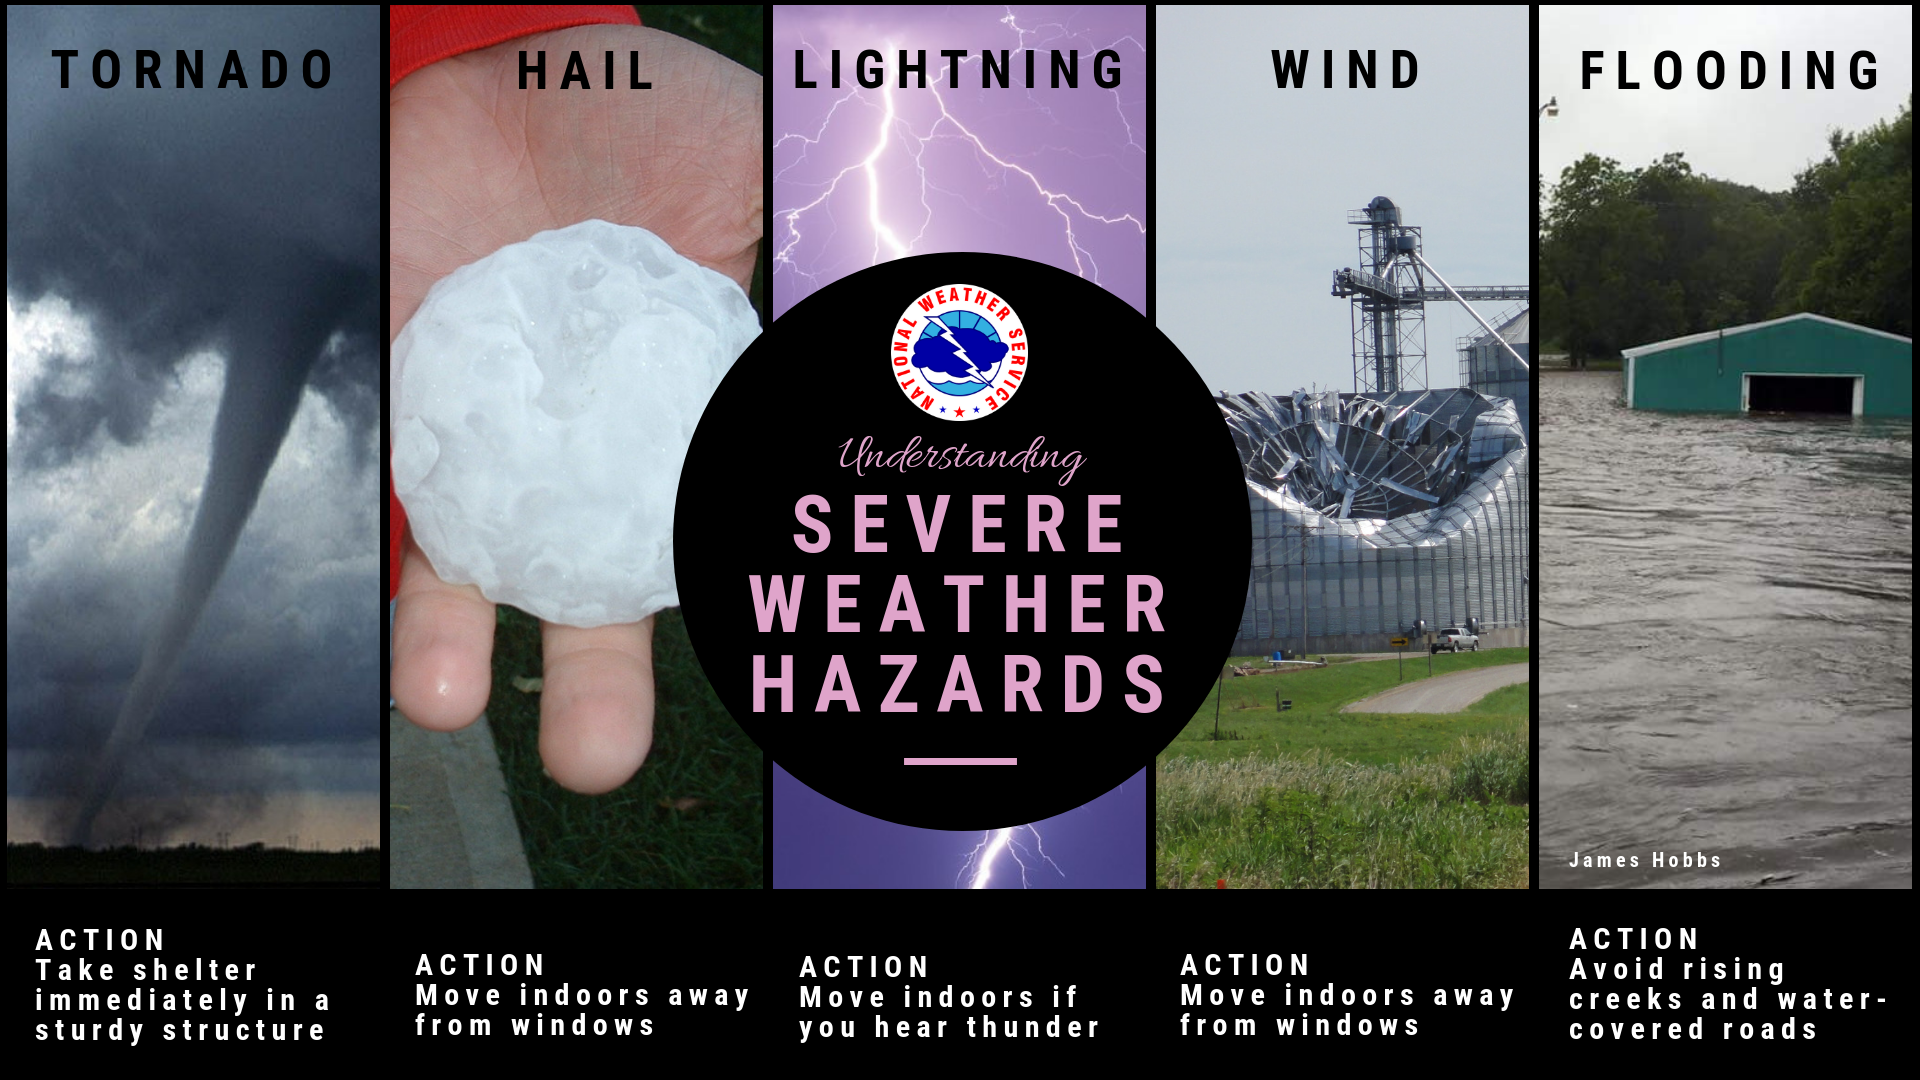 Understanding Severe Weather Hazards:TORNADO - tornadoes are violently rotating columns of air that can destroy buildings and cause significant injury or death. ACTION: Take shelter immediately in a sturdy structure.LARGE HAIL - hail can damage vehicles, crops, buildings, and cause injuries. ACTION: Move indoors away from windows.STRONG WIND - strong wind can knock over trees and damage buildings. ACTION: Move indoors away from windows.HEAVY RAIN - Heavy rain can cause flash flooding. ACTION: Avoid rising creeks and water-covered roads.LIGHTNING - Lightning strikes can cause significant injury or death. ACTION: Move indoors if you hear thunder.